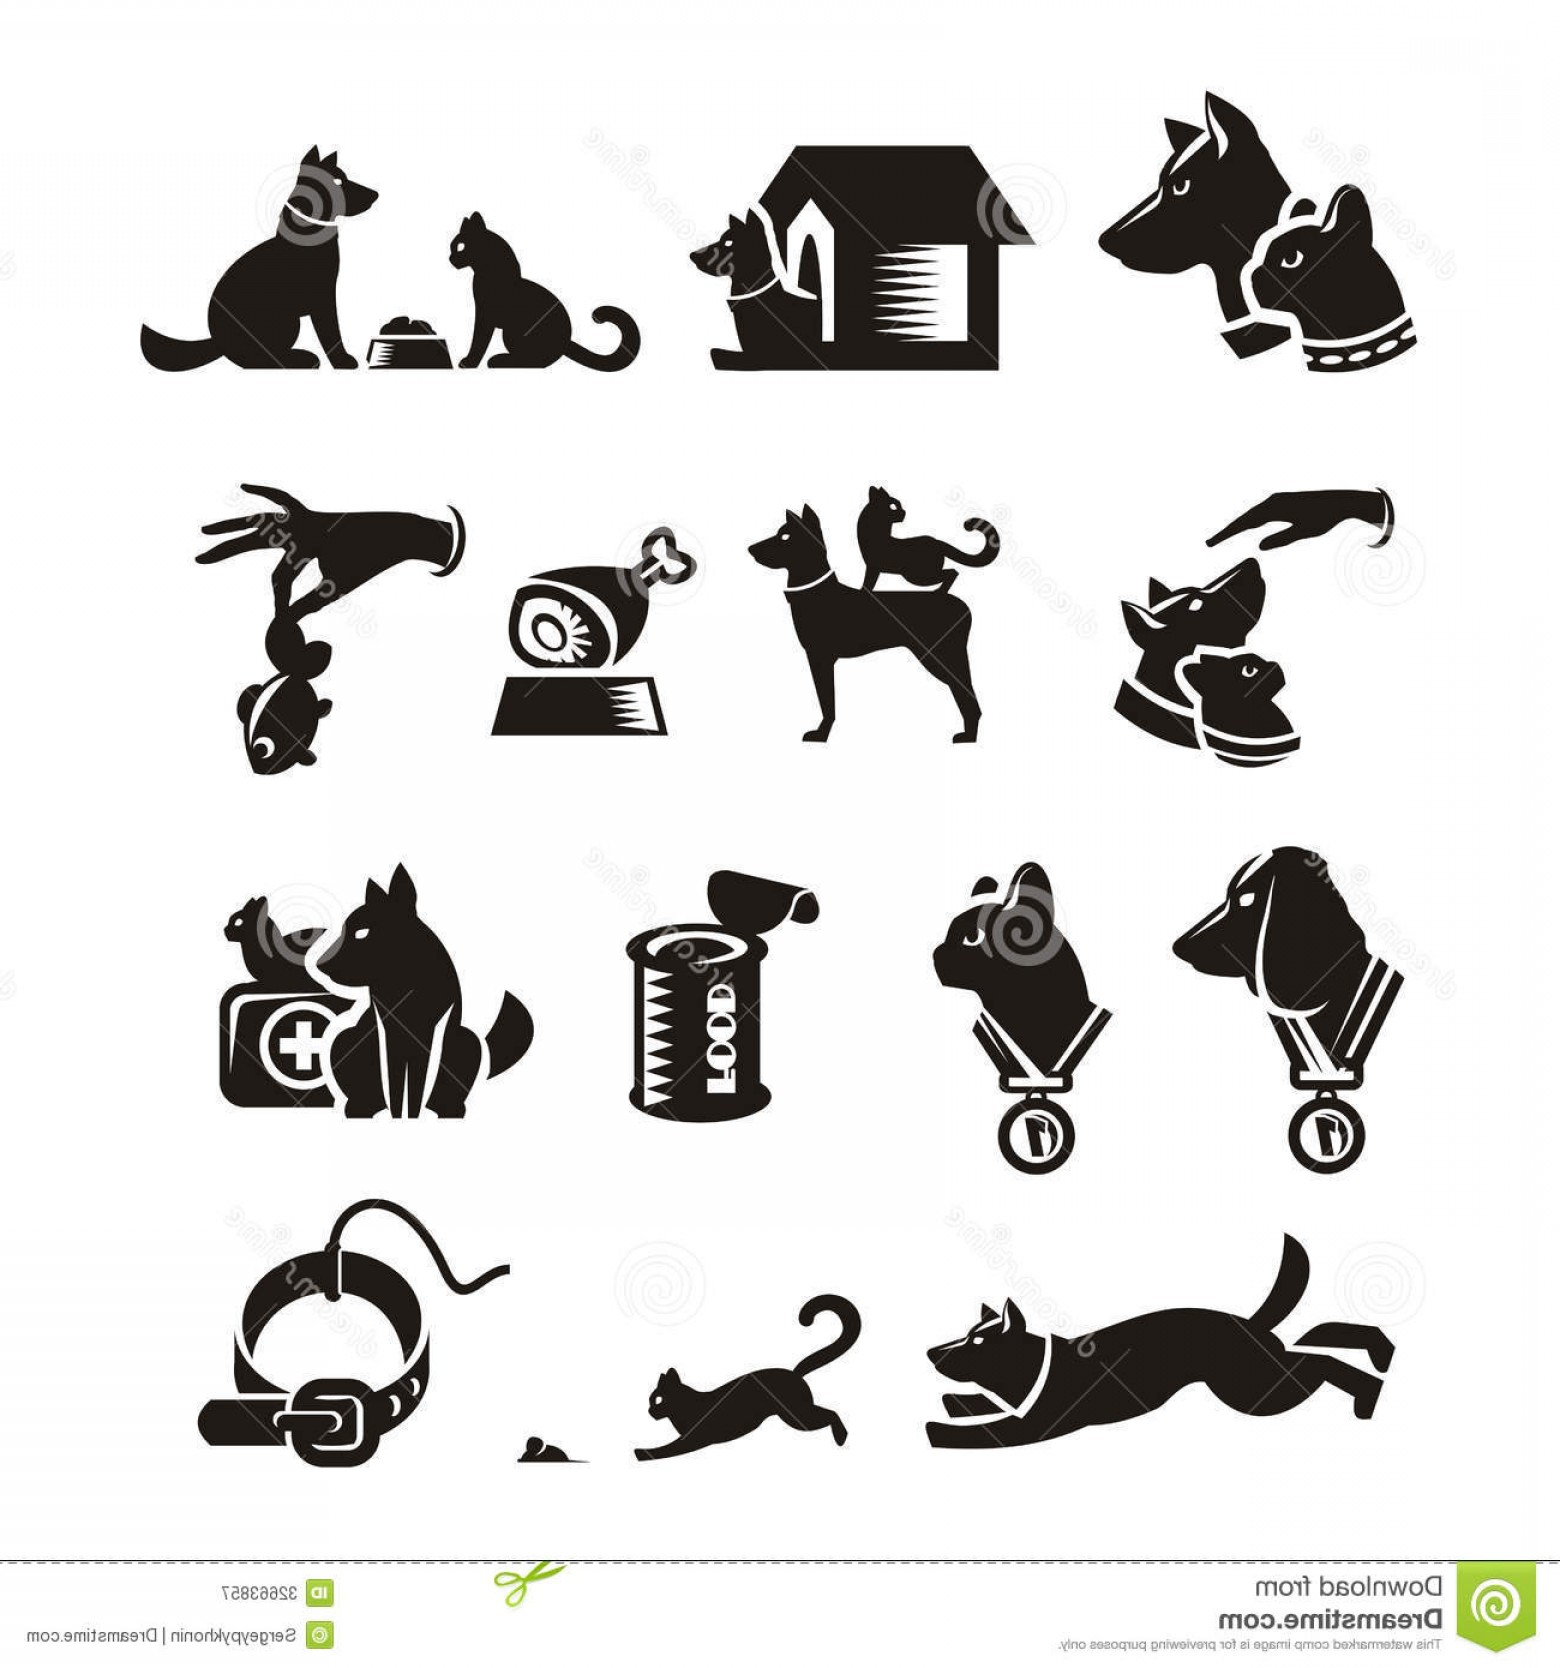 Dog And Cat Vector Illustration: Royalty Free Stock Photography Cat Dog Authors Illustration Vector Image